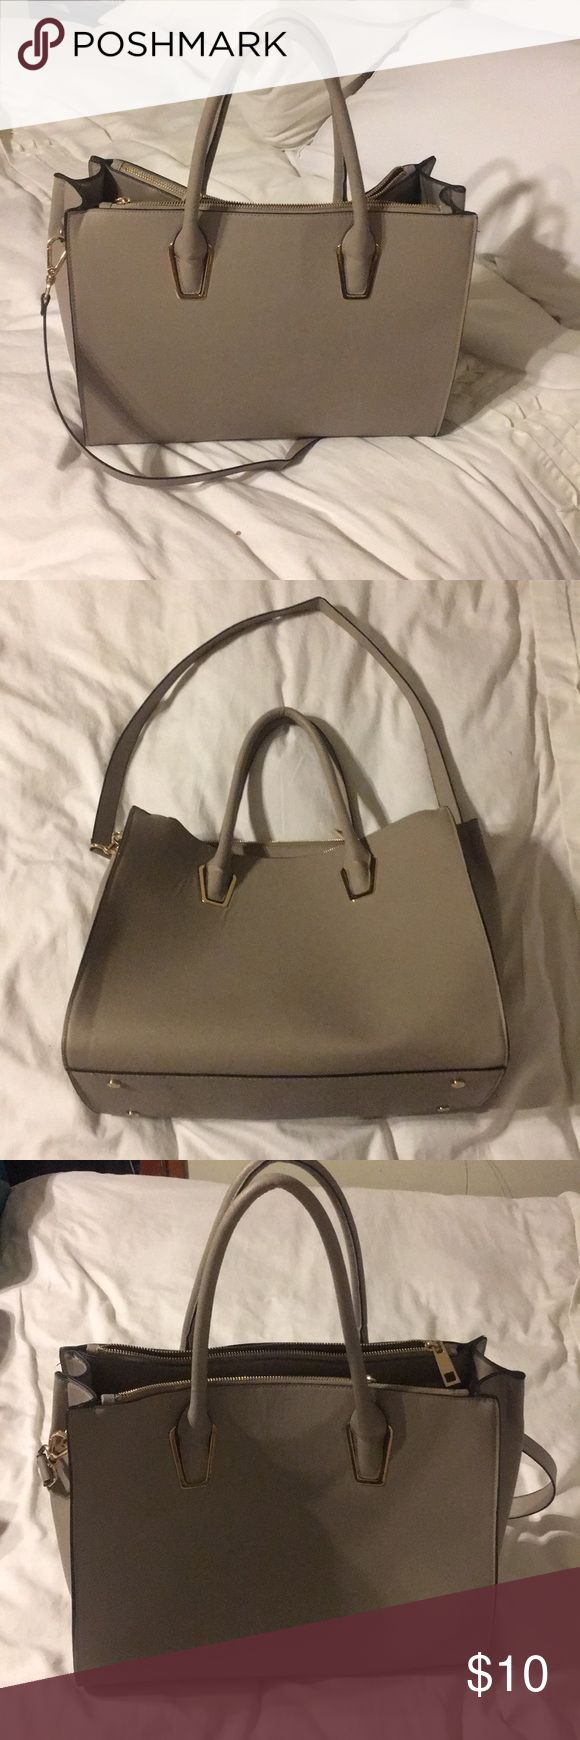 "H & m purse Beige taupe purse Faux leather Preloved Originally purchased at the hm in Paris Zippers are still functioning A few stretches here and there. Nothing extremely noticeable Long strap is detachable 13"" by 16"" H&M Bags Shoulder Bags"